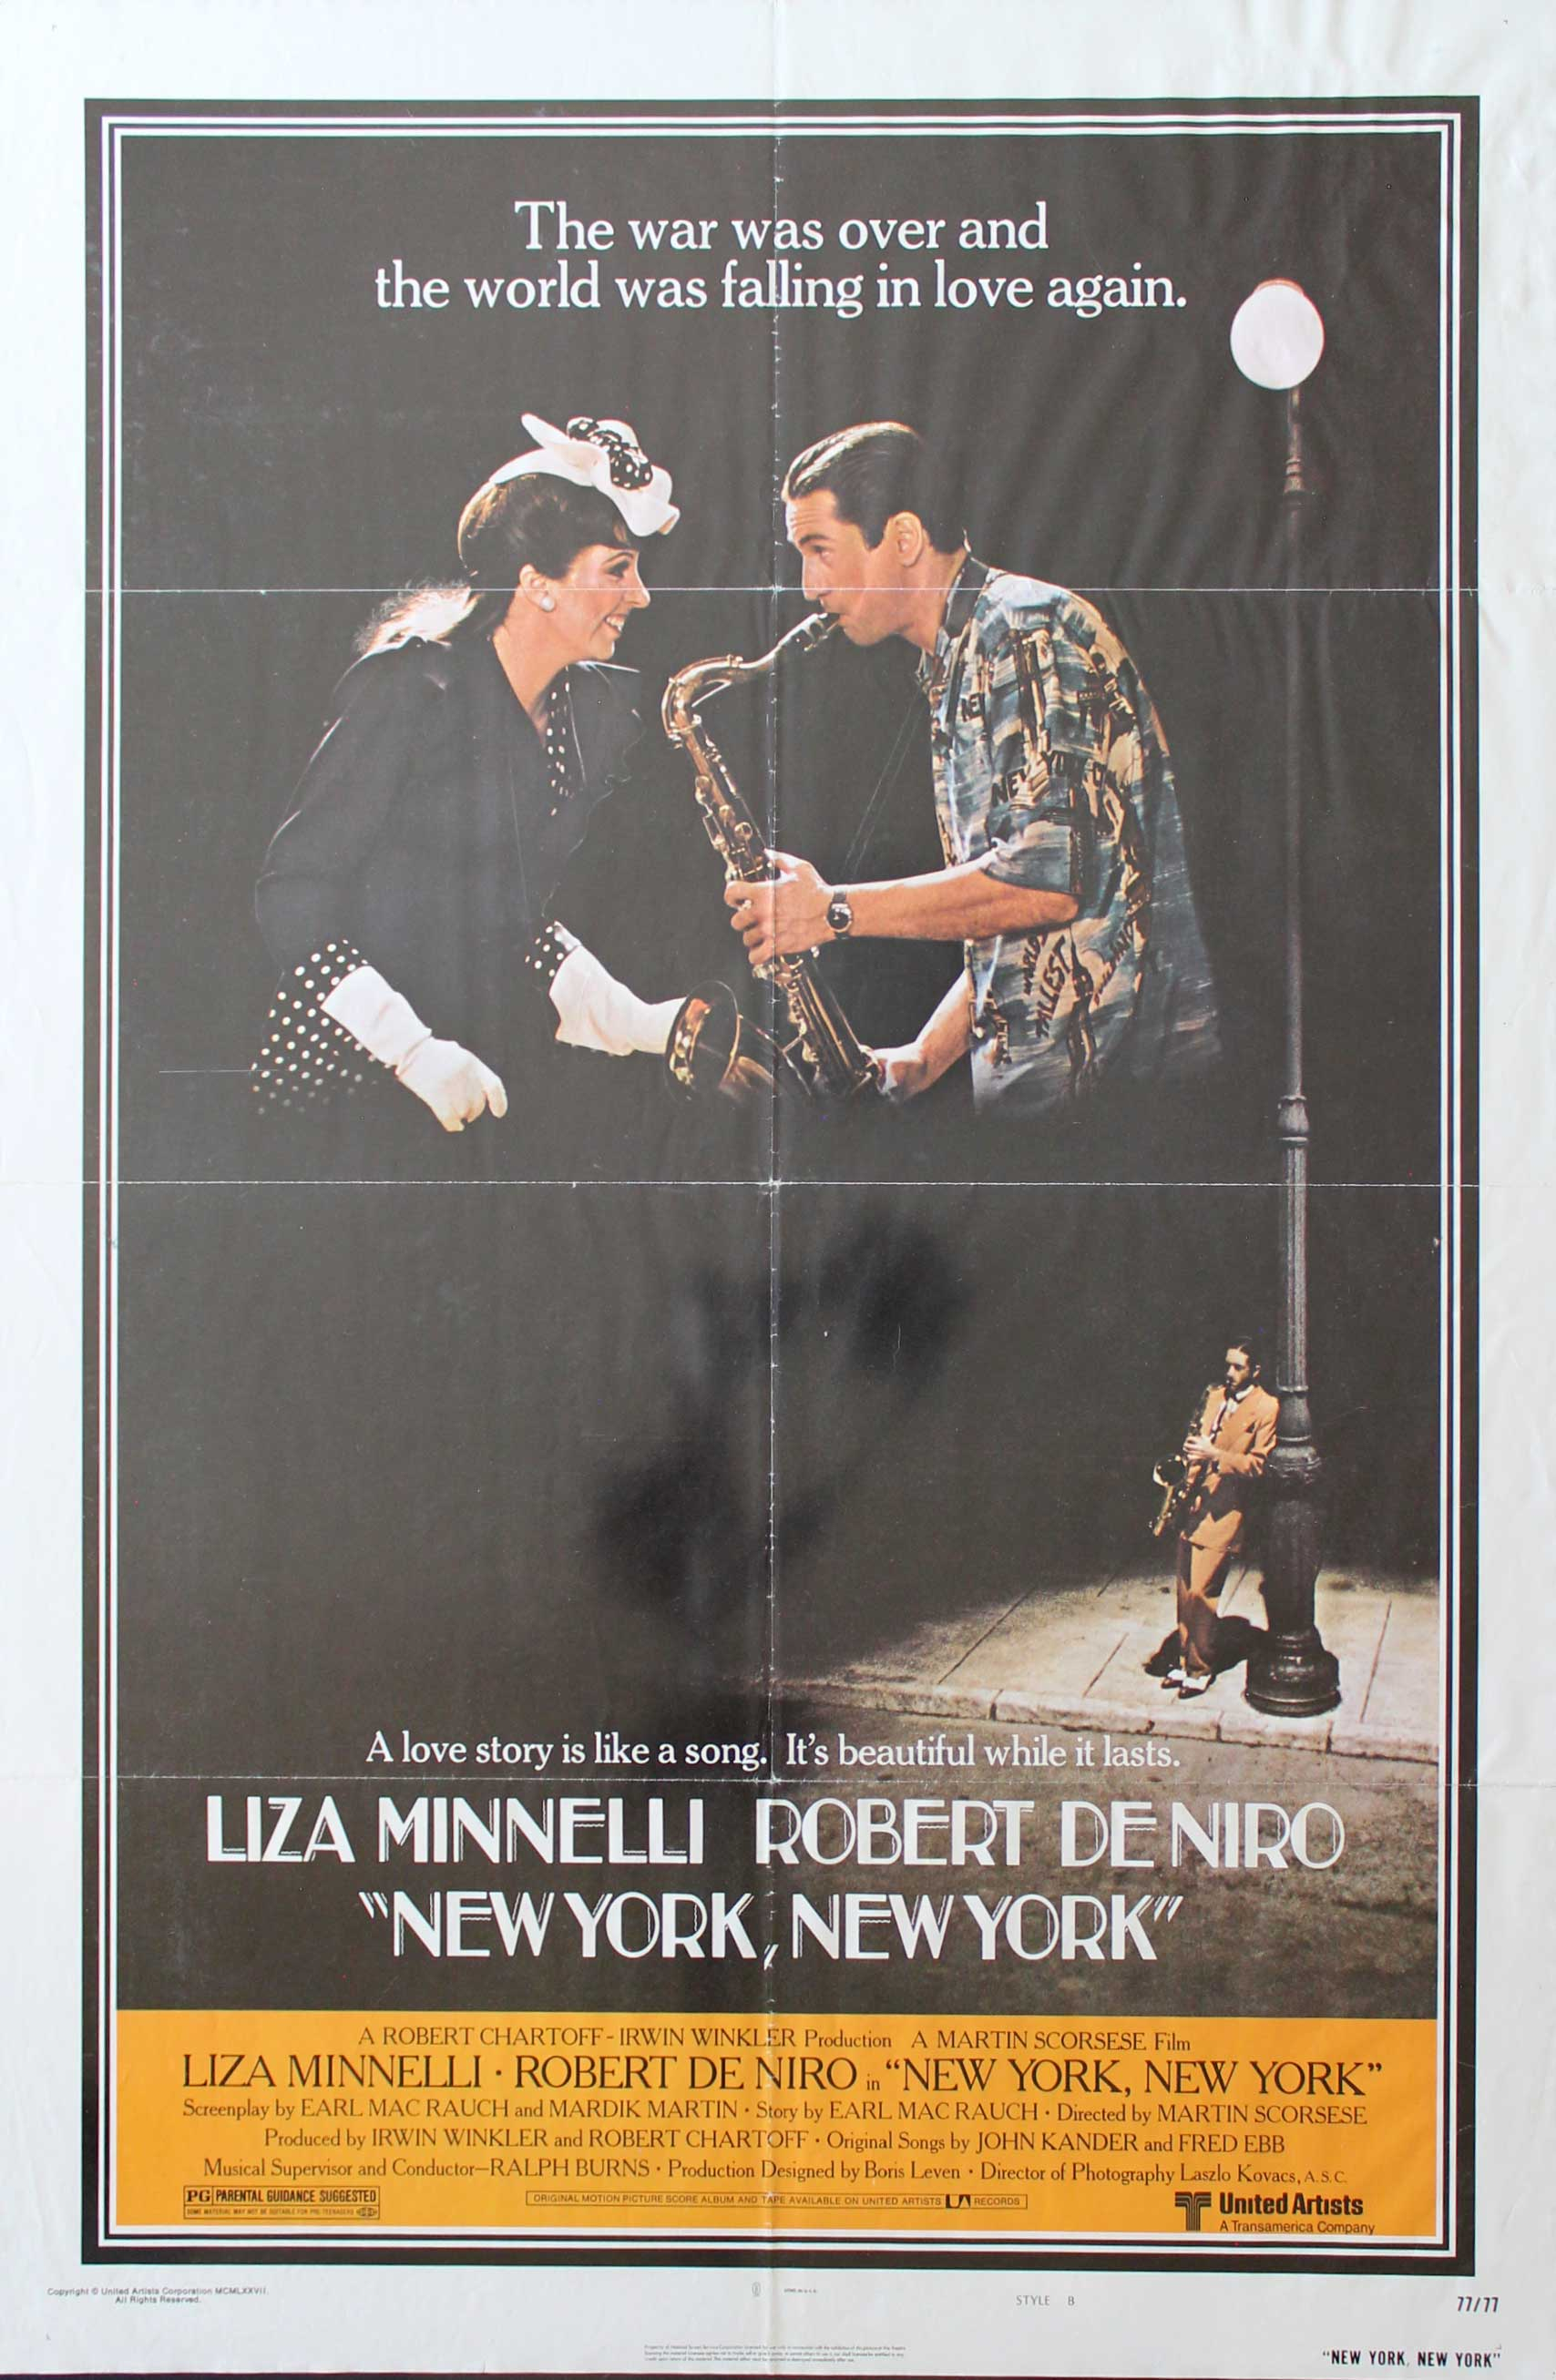 New York, New York, 1977, Liza Minnelli, Style B, Original 1 Sheet (27x41)